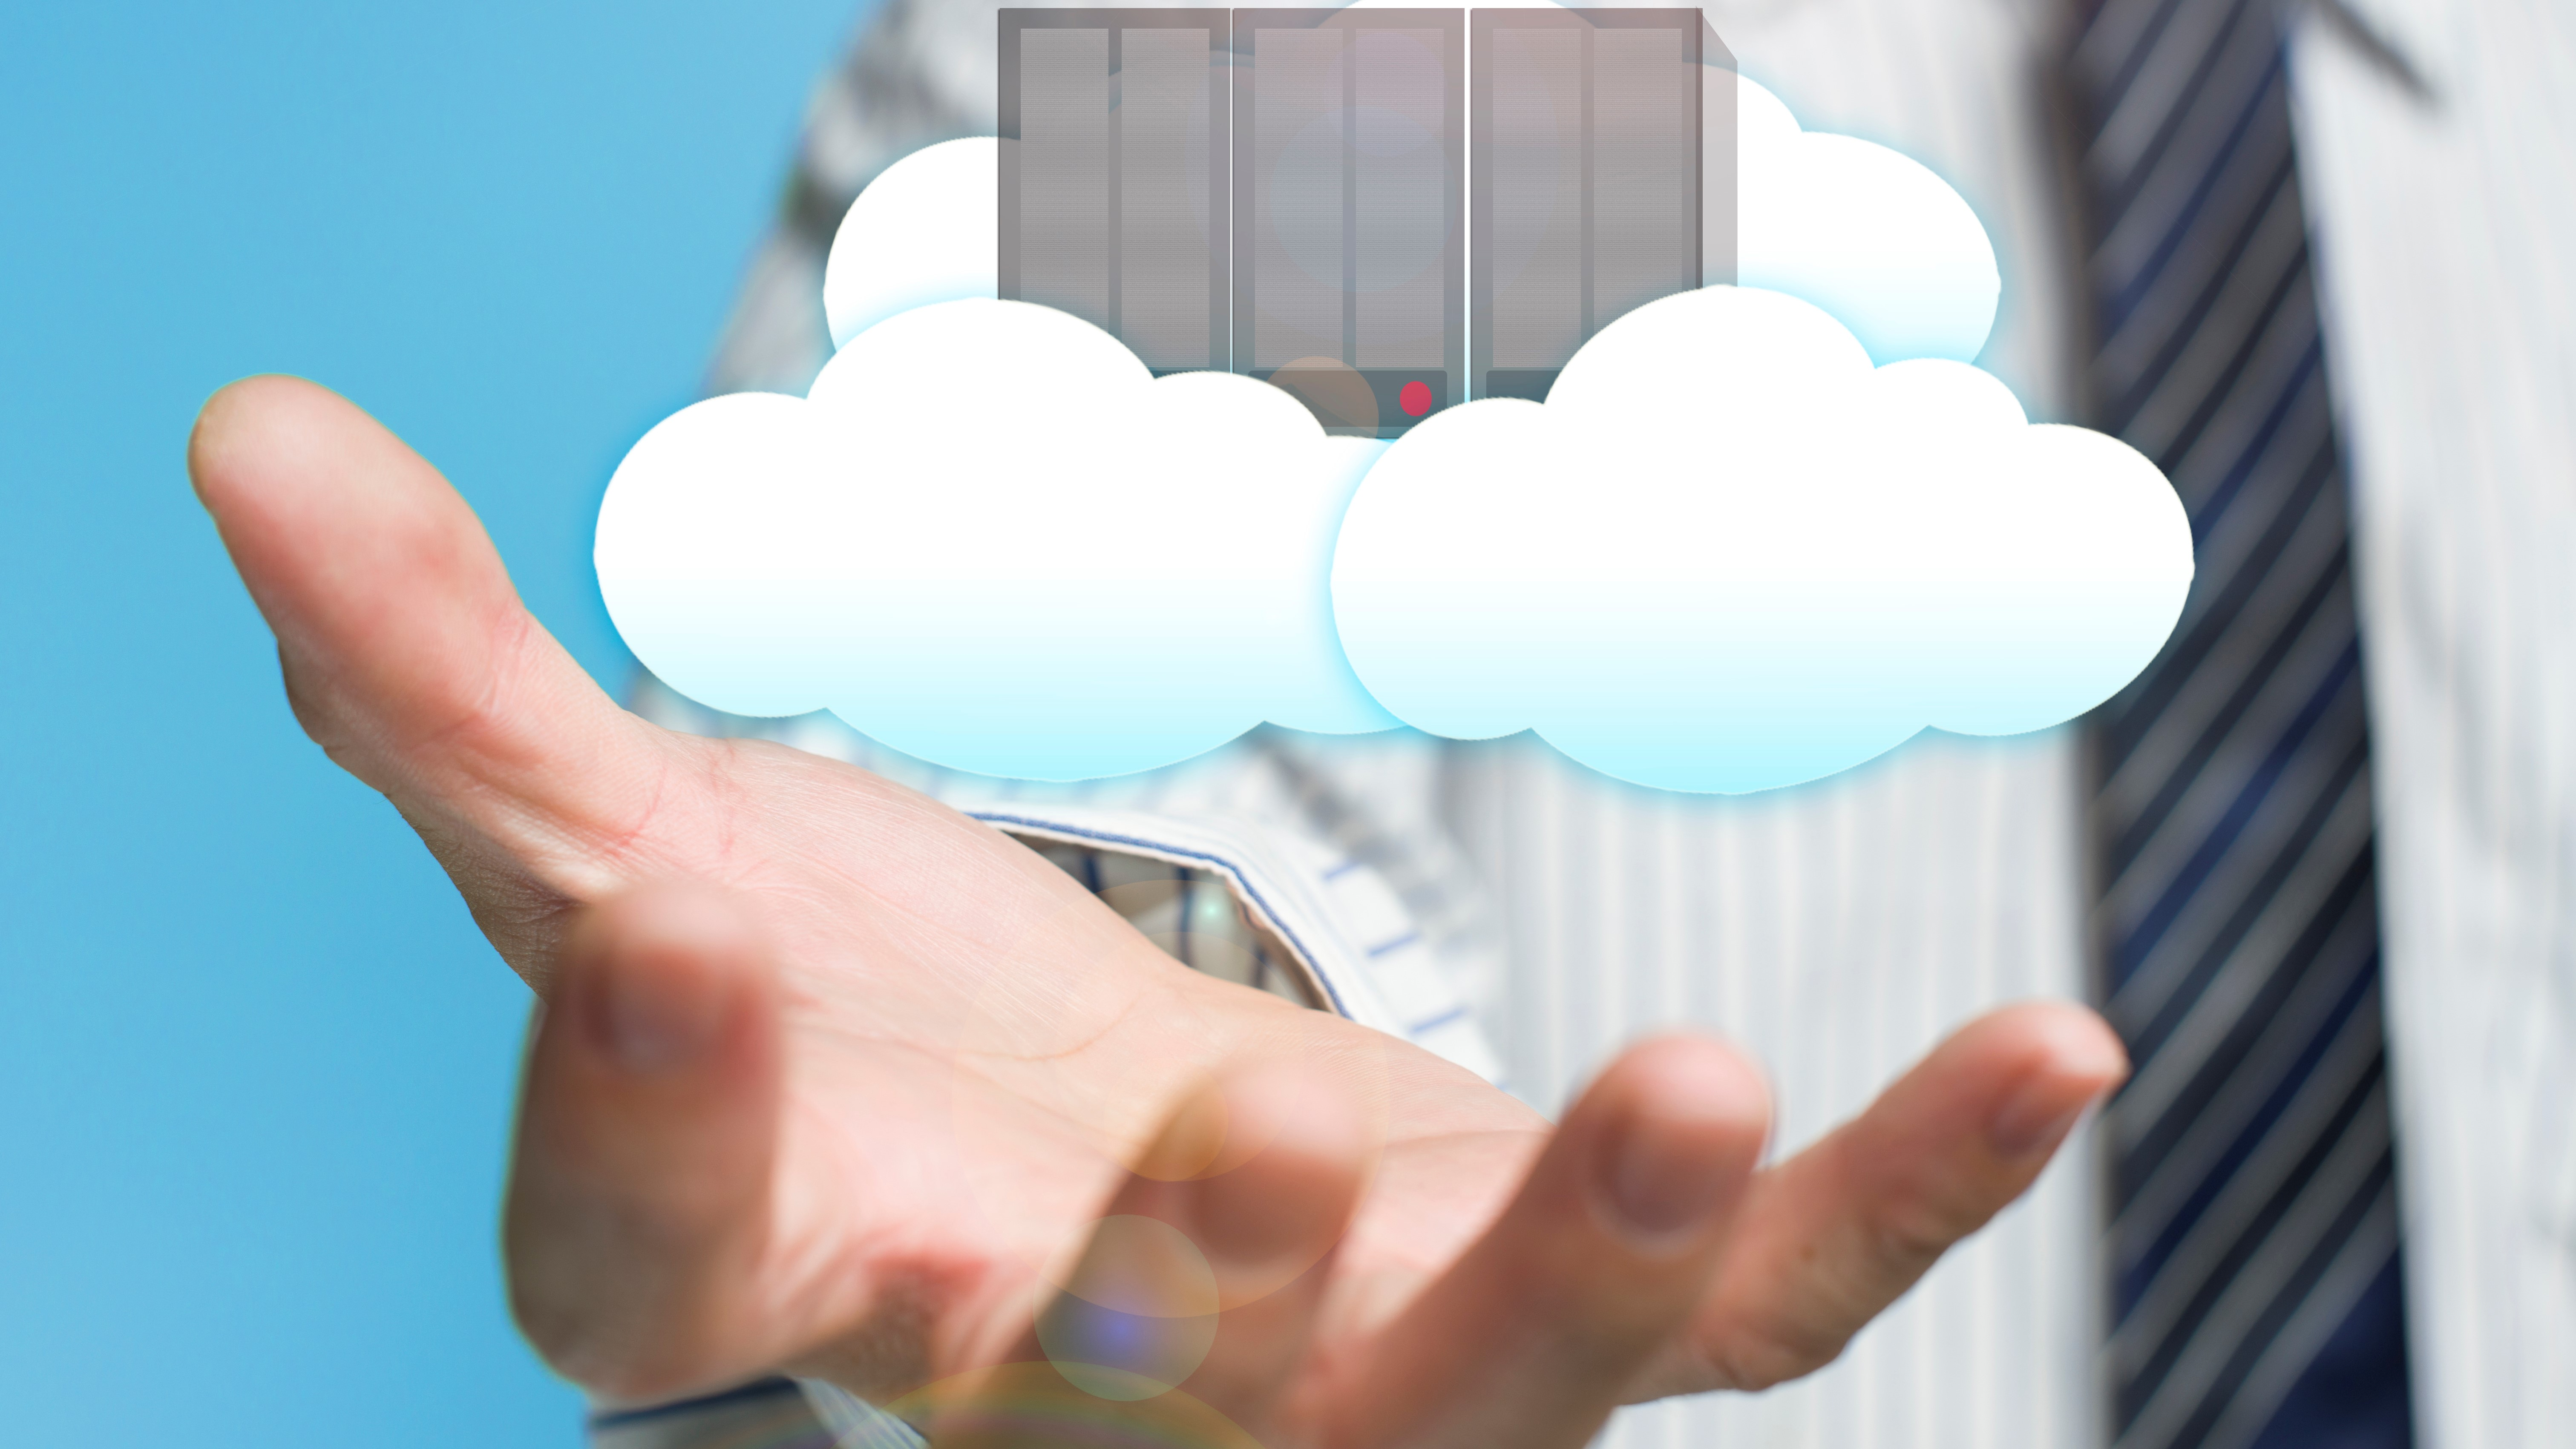 Carillon's Practical Guide to the Cloud